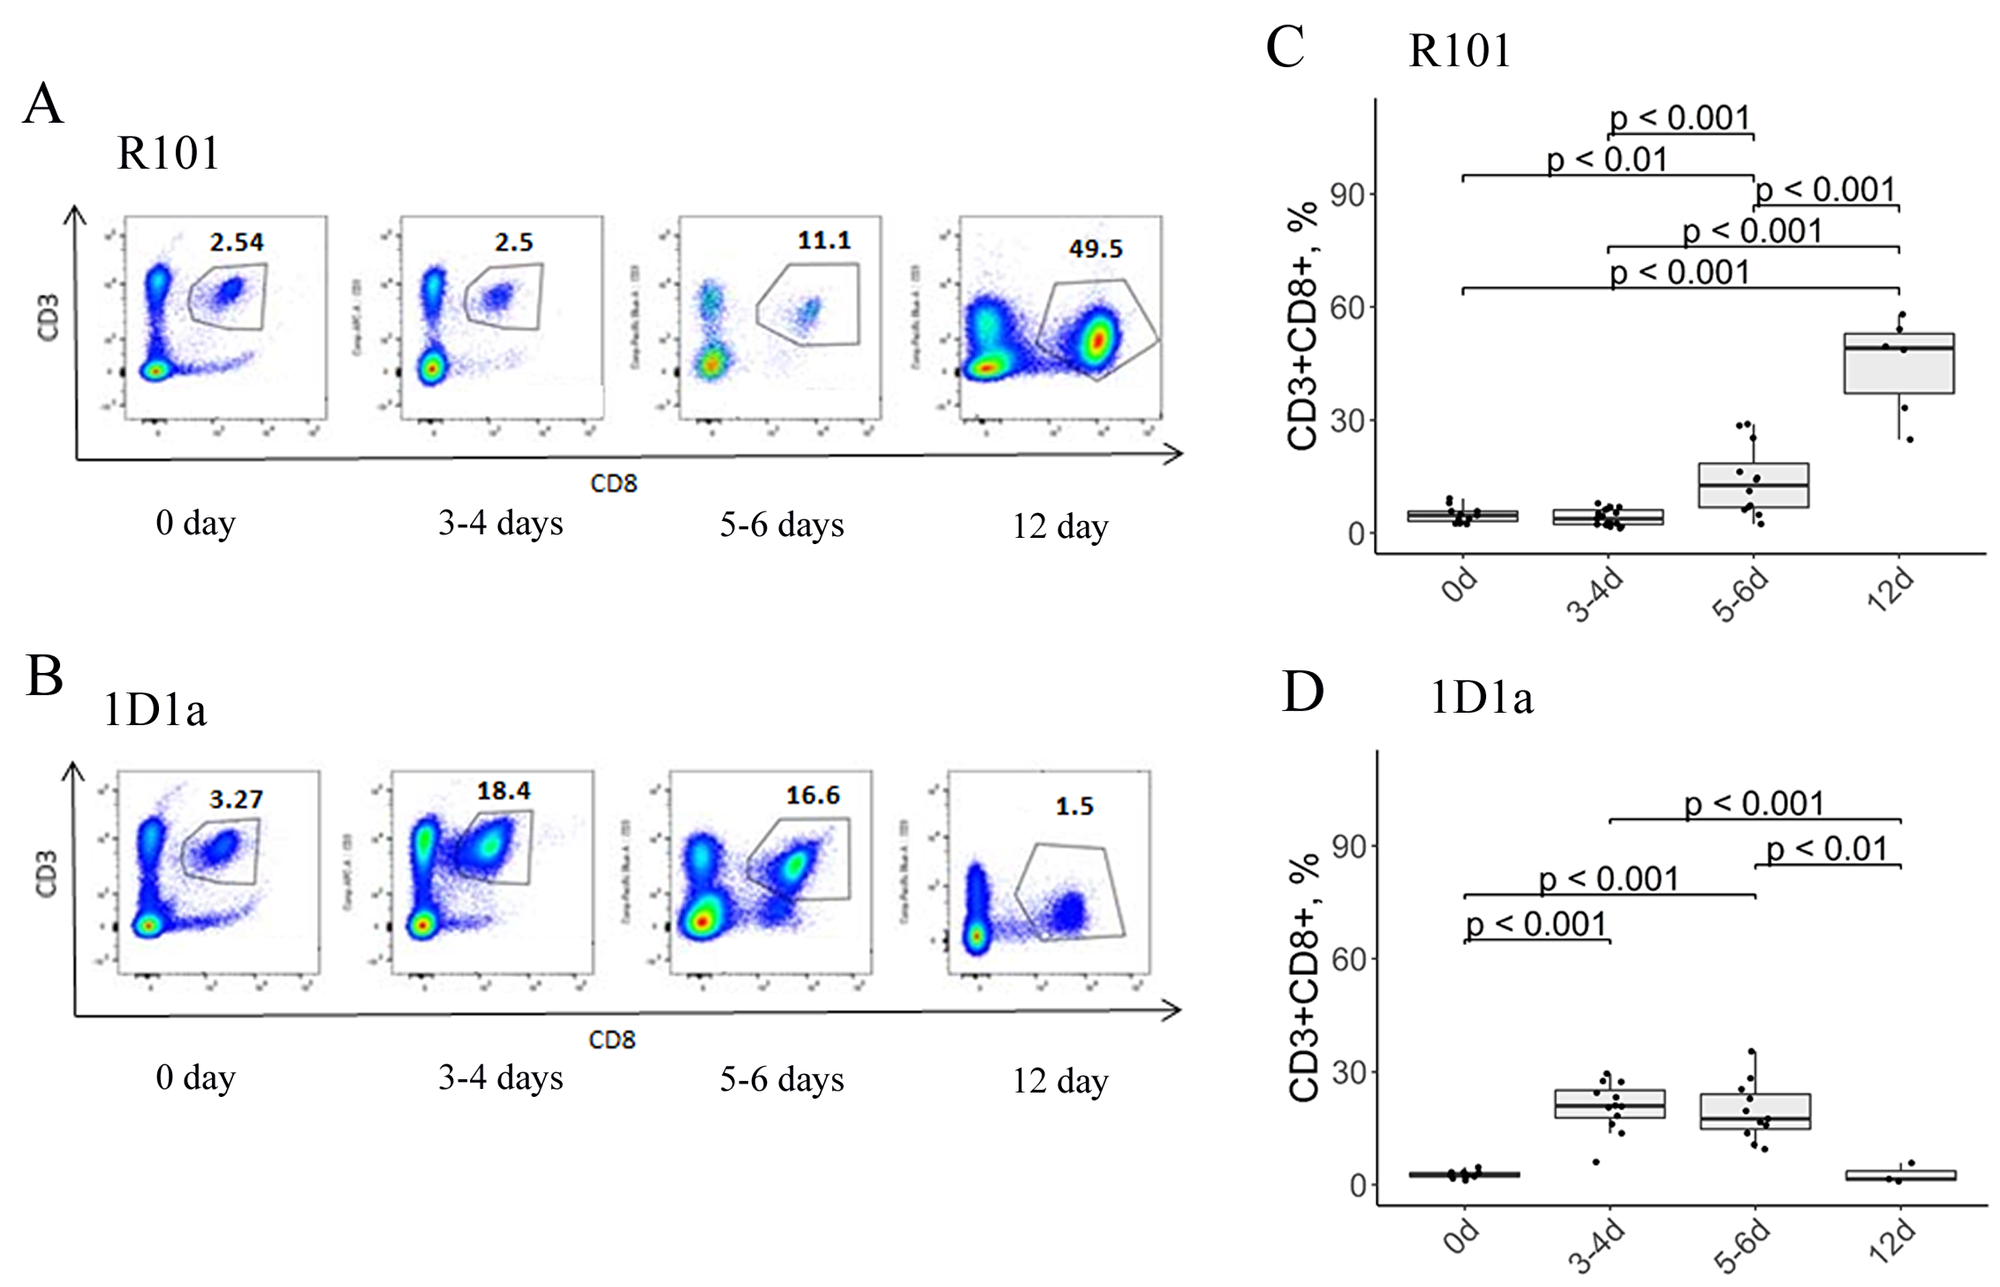 Flow-cytometric analysis of CD3/CD8 expression on lymphocytes from the peritoneal cavity of WT (A, C) and Tg (B, D) mice on days 0, 3-4, 5-6, and 12 after immunization.